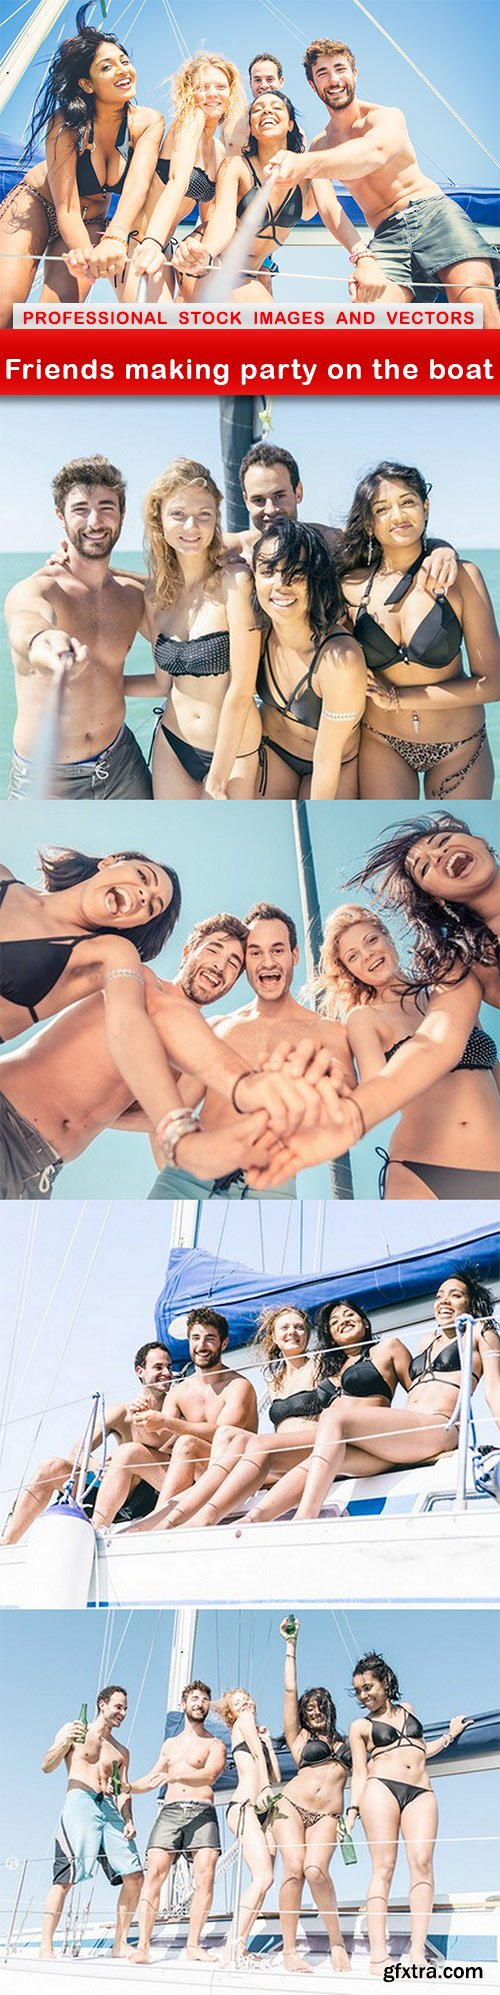 Friends making party on the boat - 5 UHQ JPEG